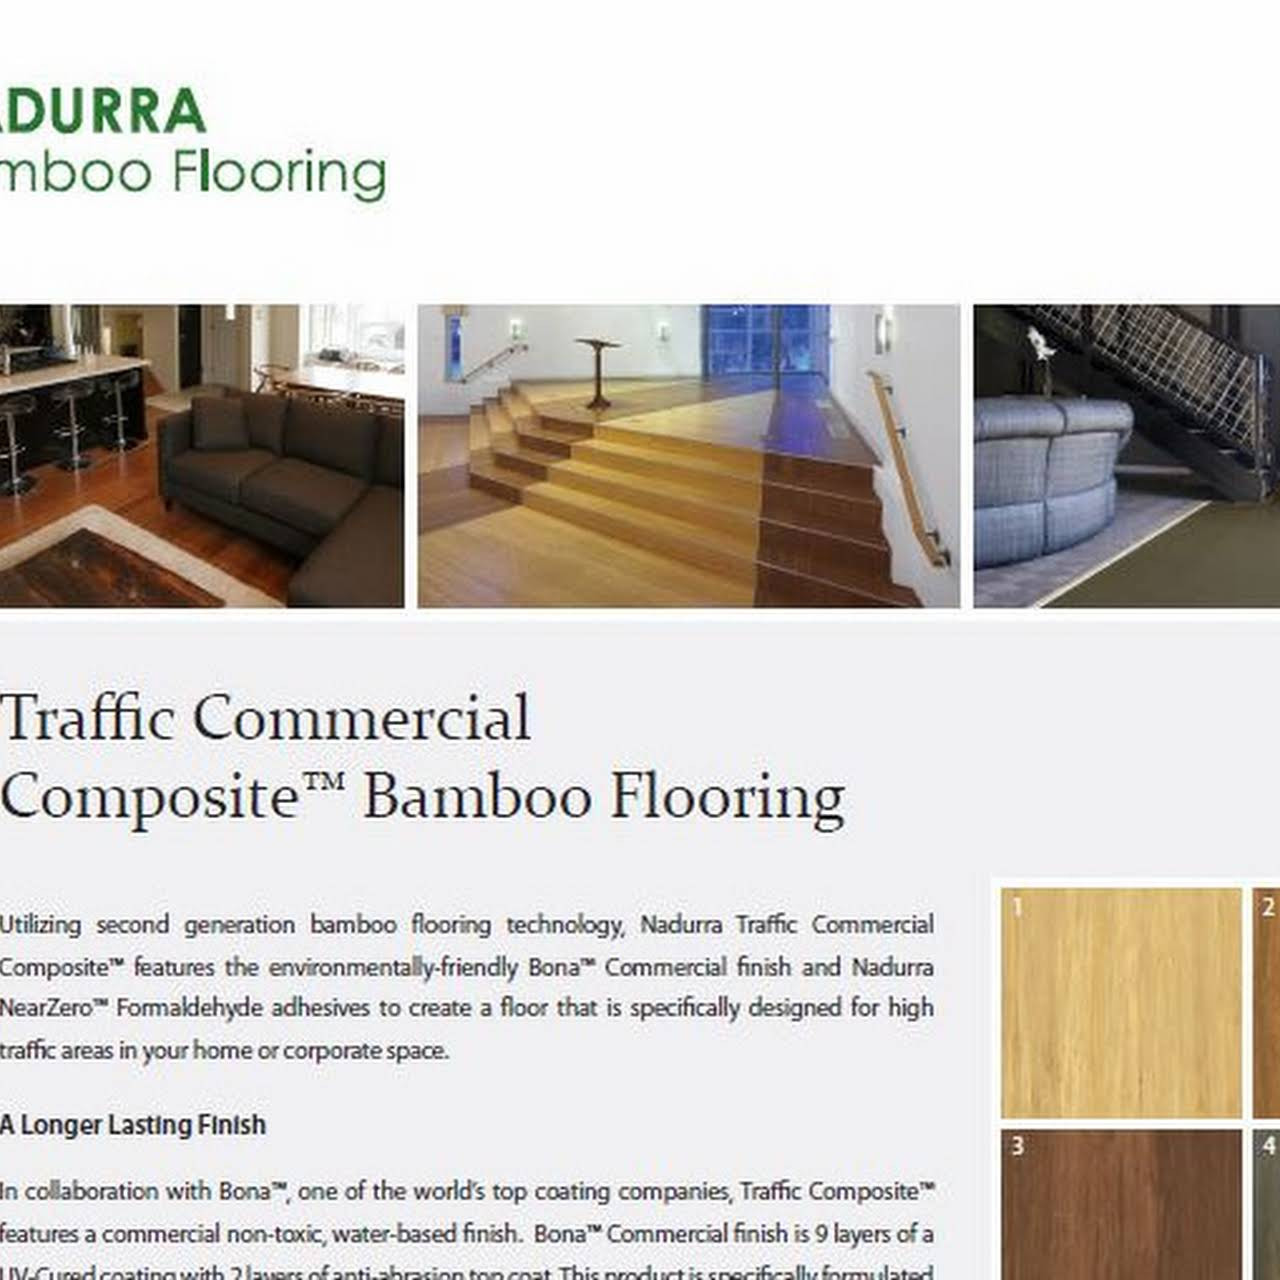 hardwood flooring yorkdale of nadurra wood corporation flooring store in north york pertaining to nadurra traffic b